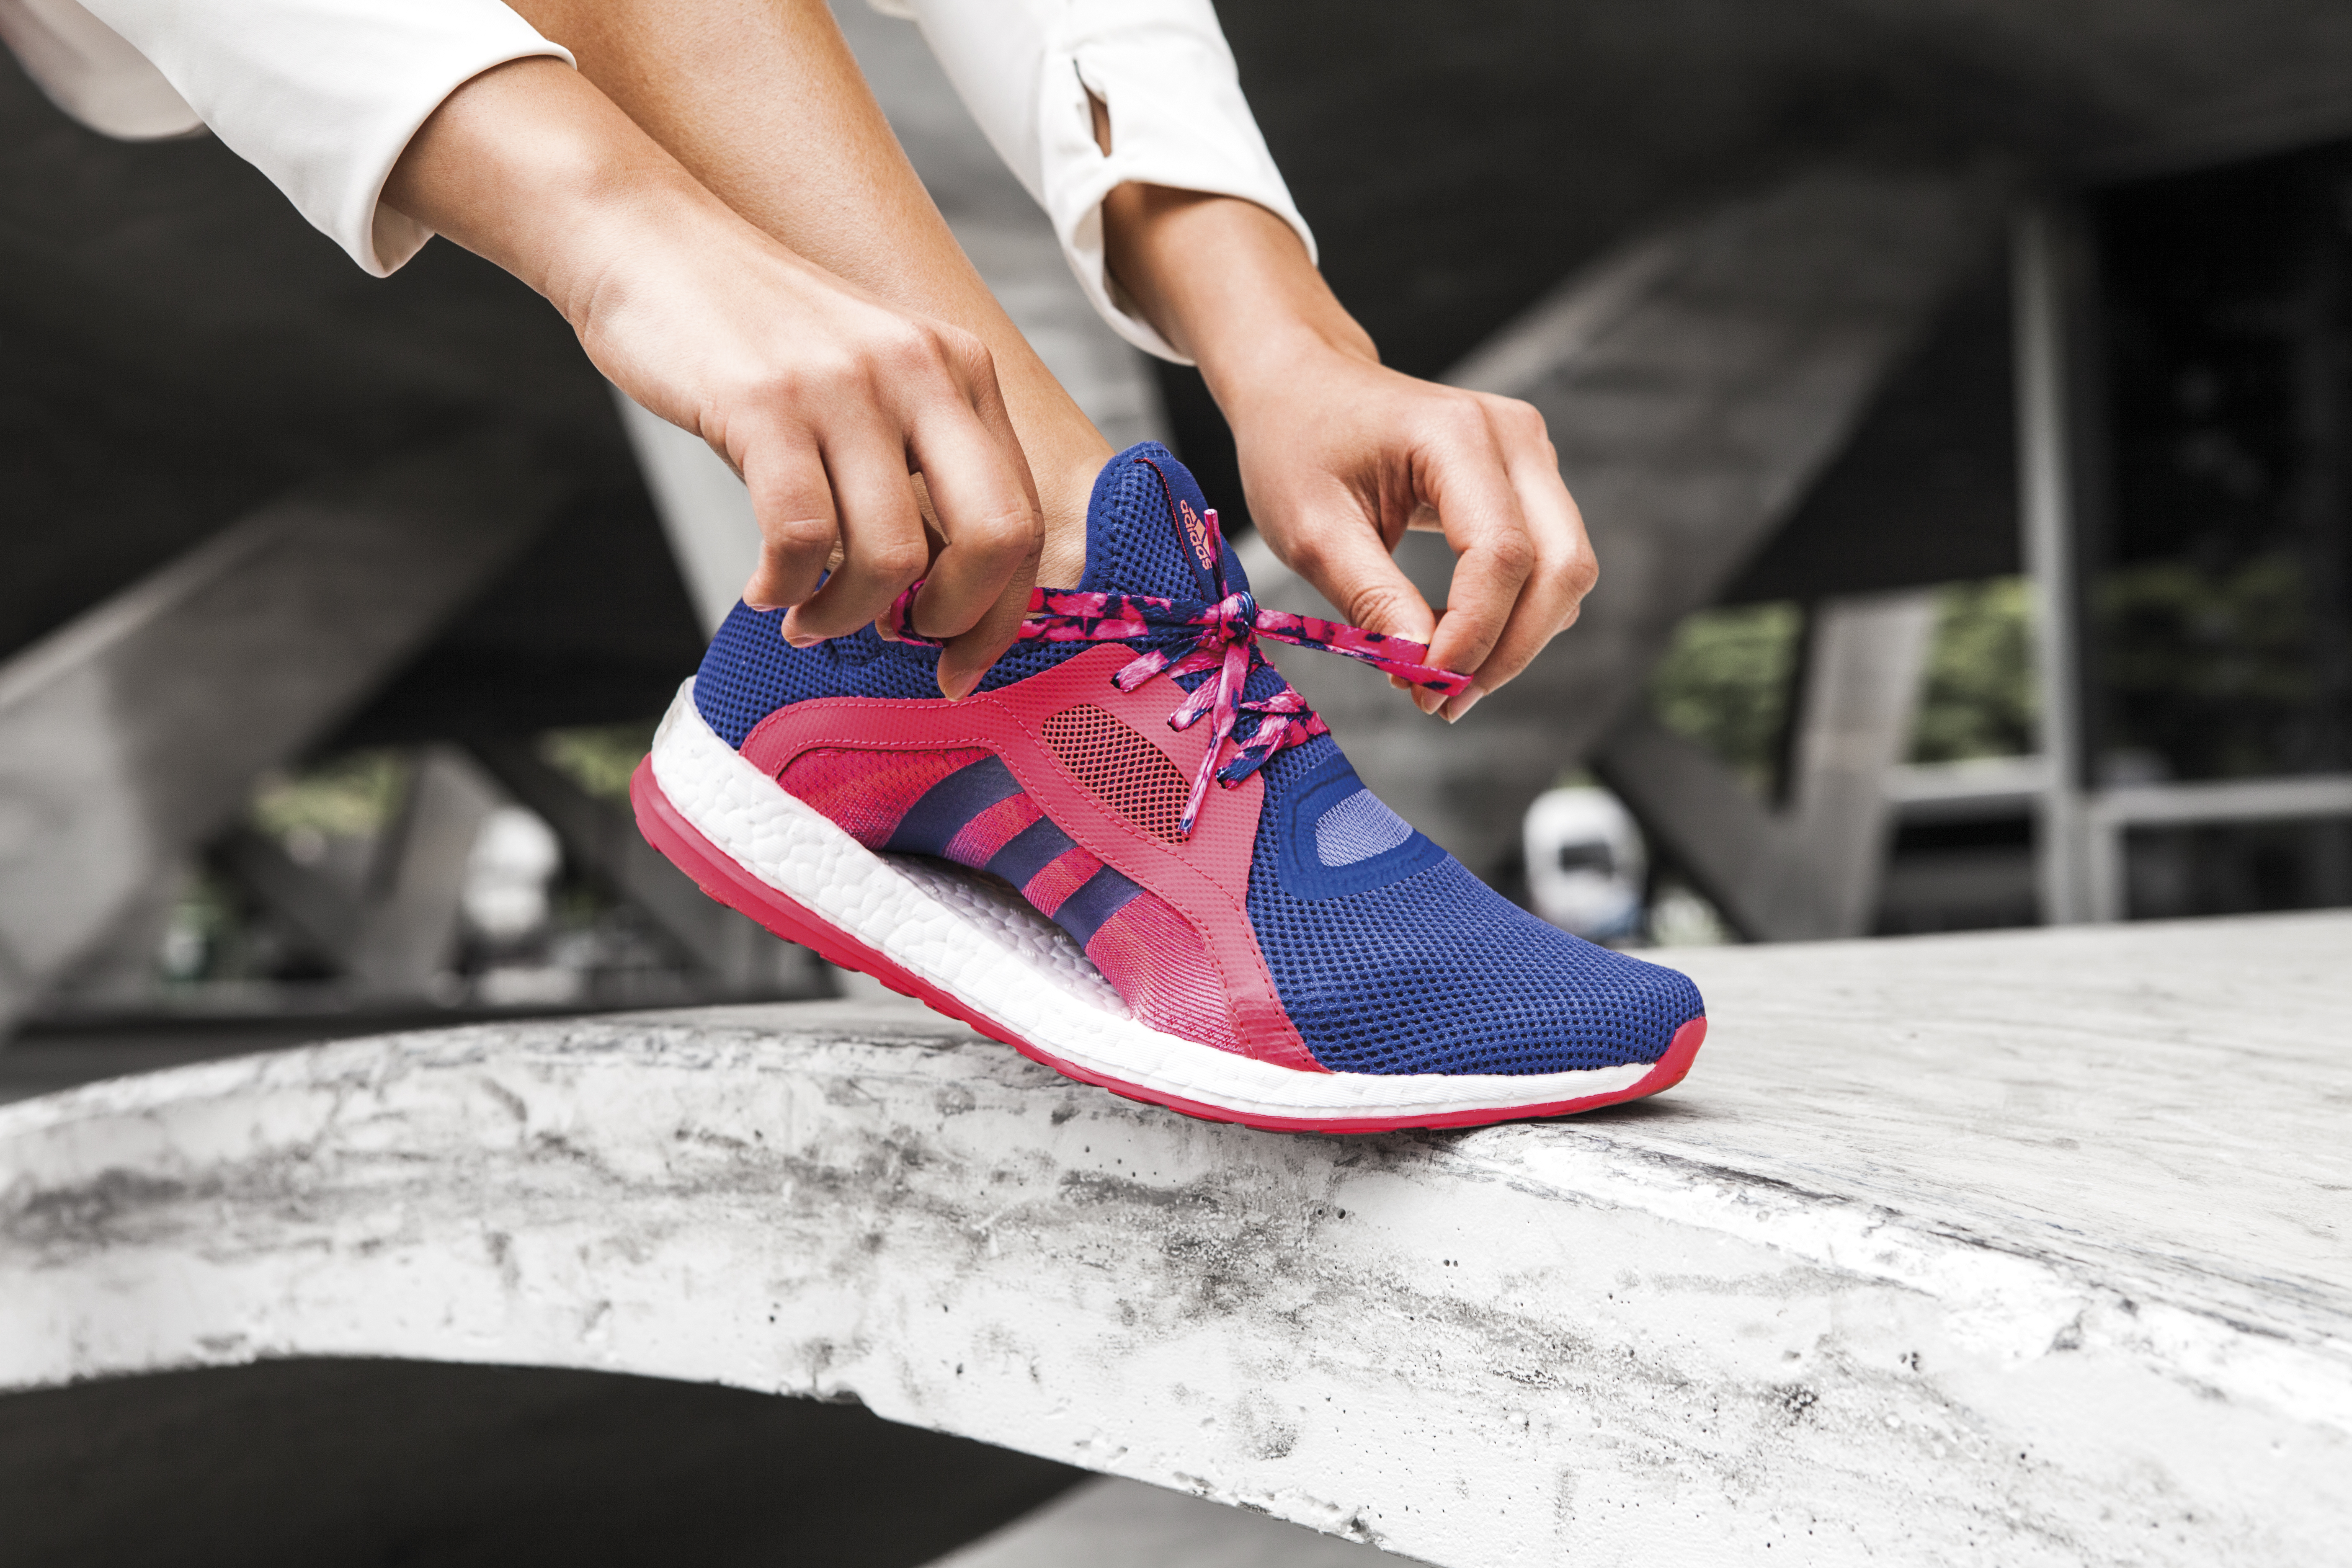 9aced24d6 pure boost x trainer zip shoes  adidas pureboost x